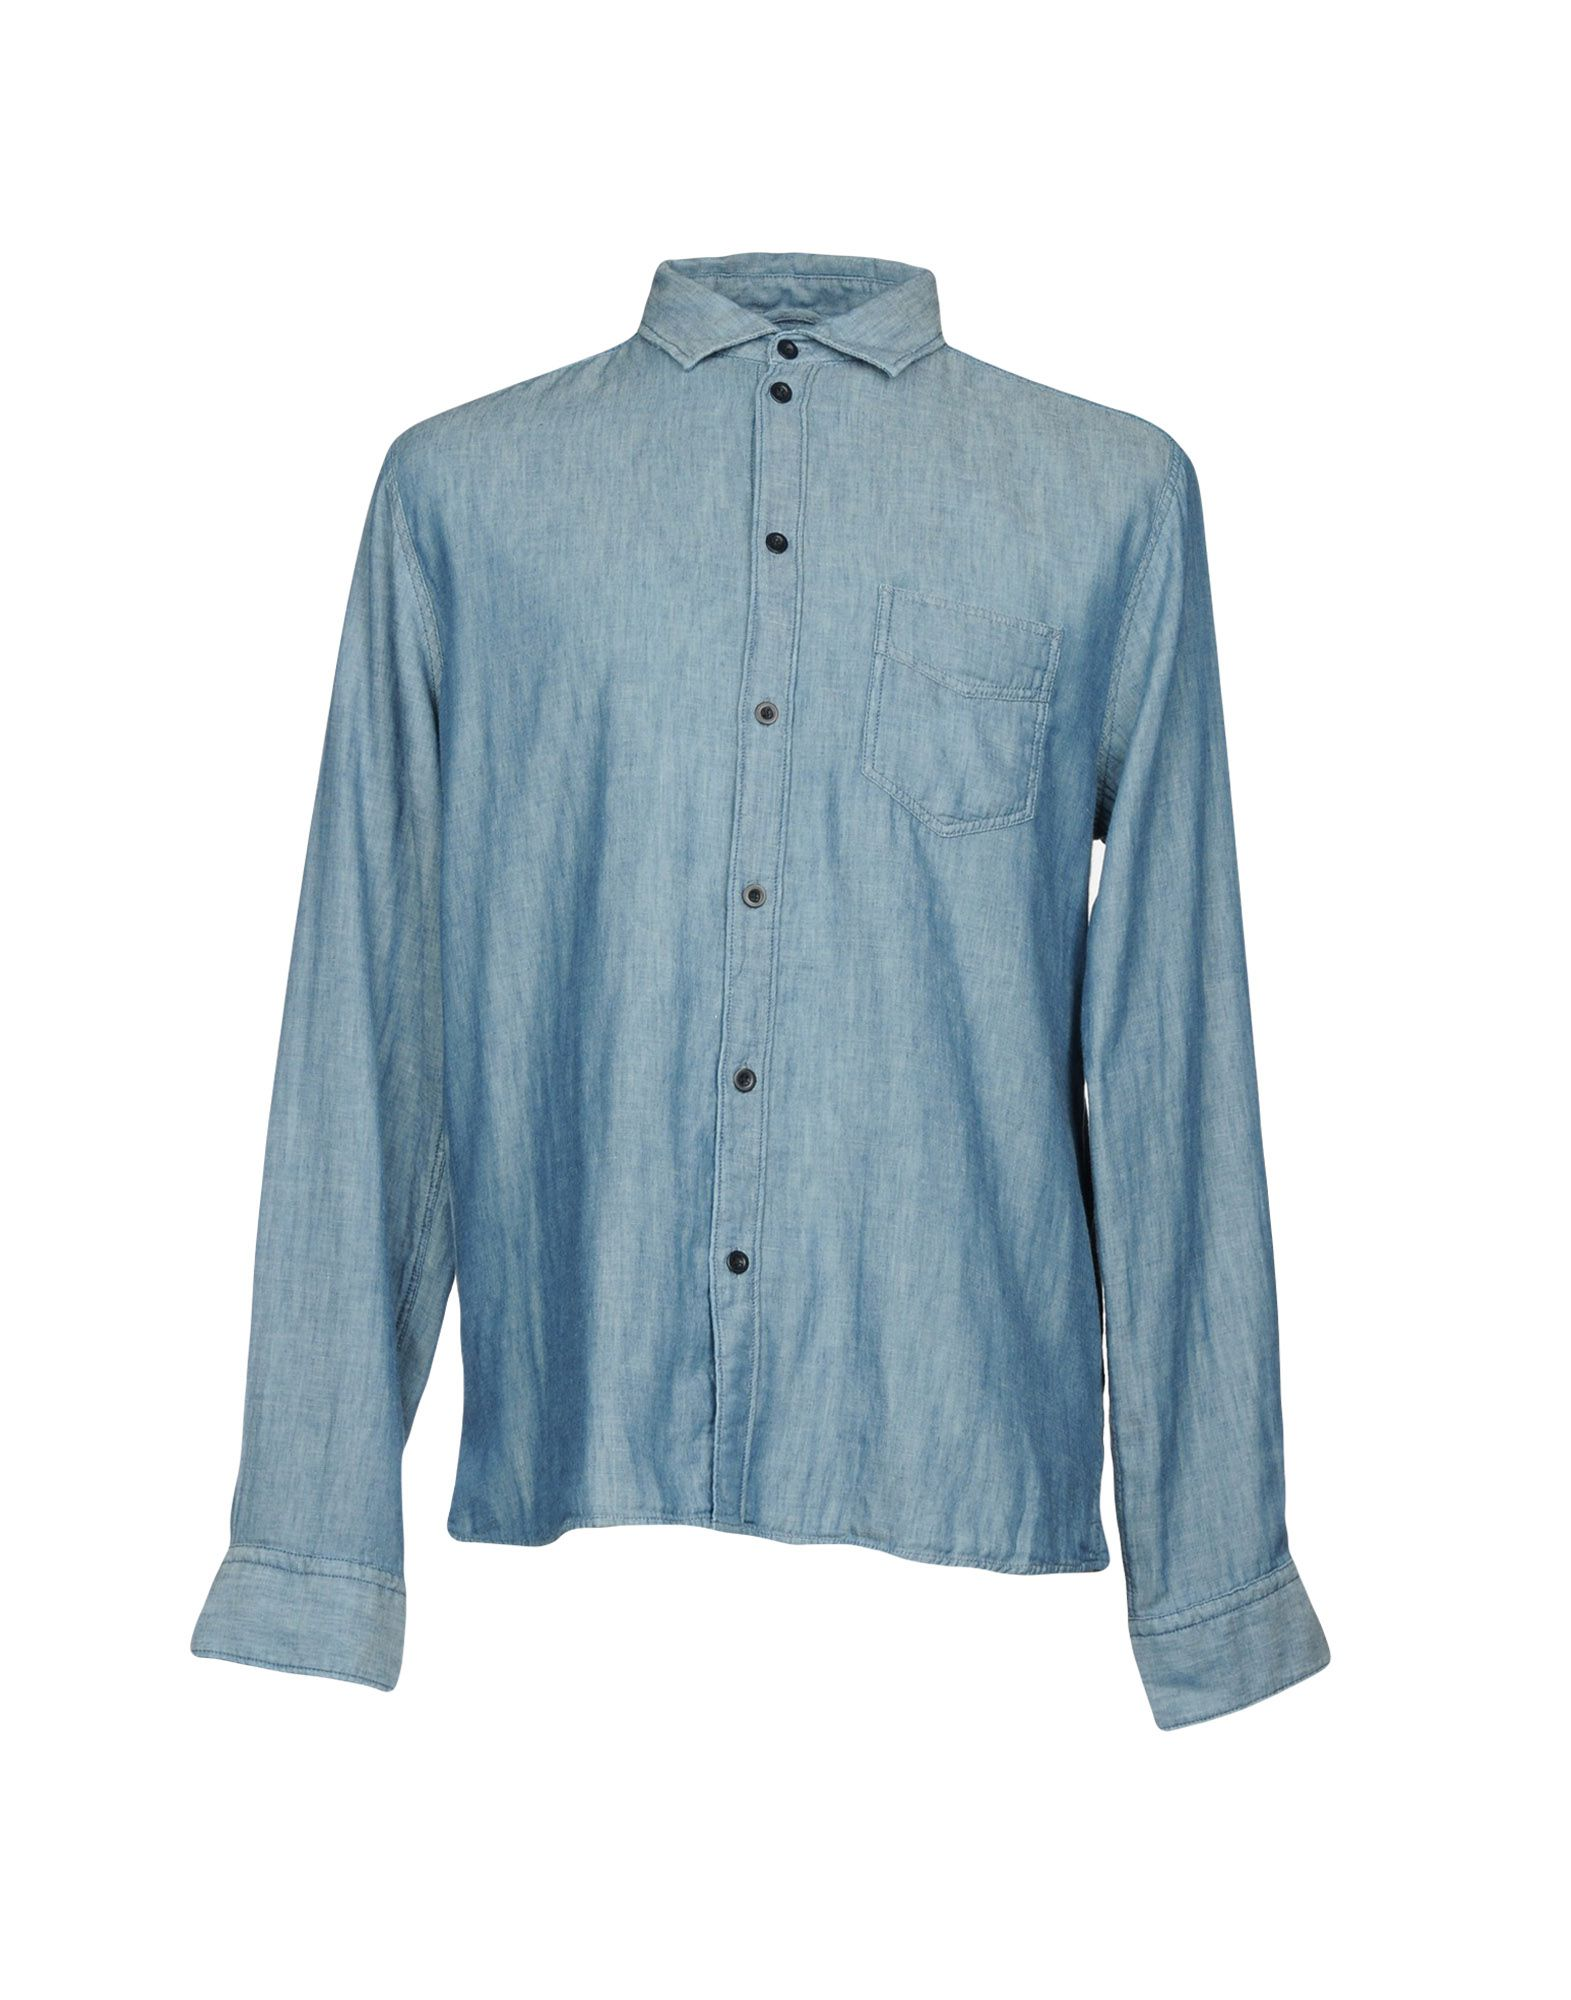 ALBAM Solid Color Shirt in Blue